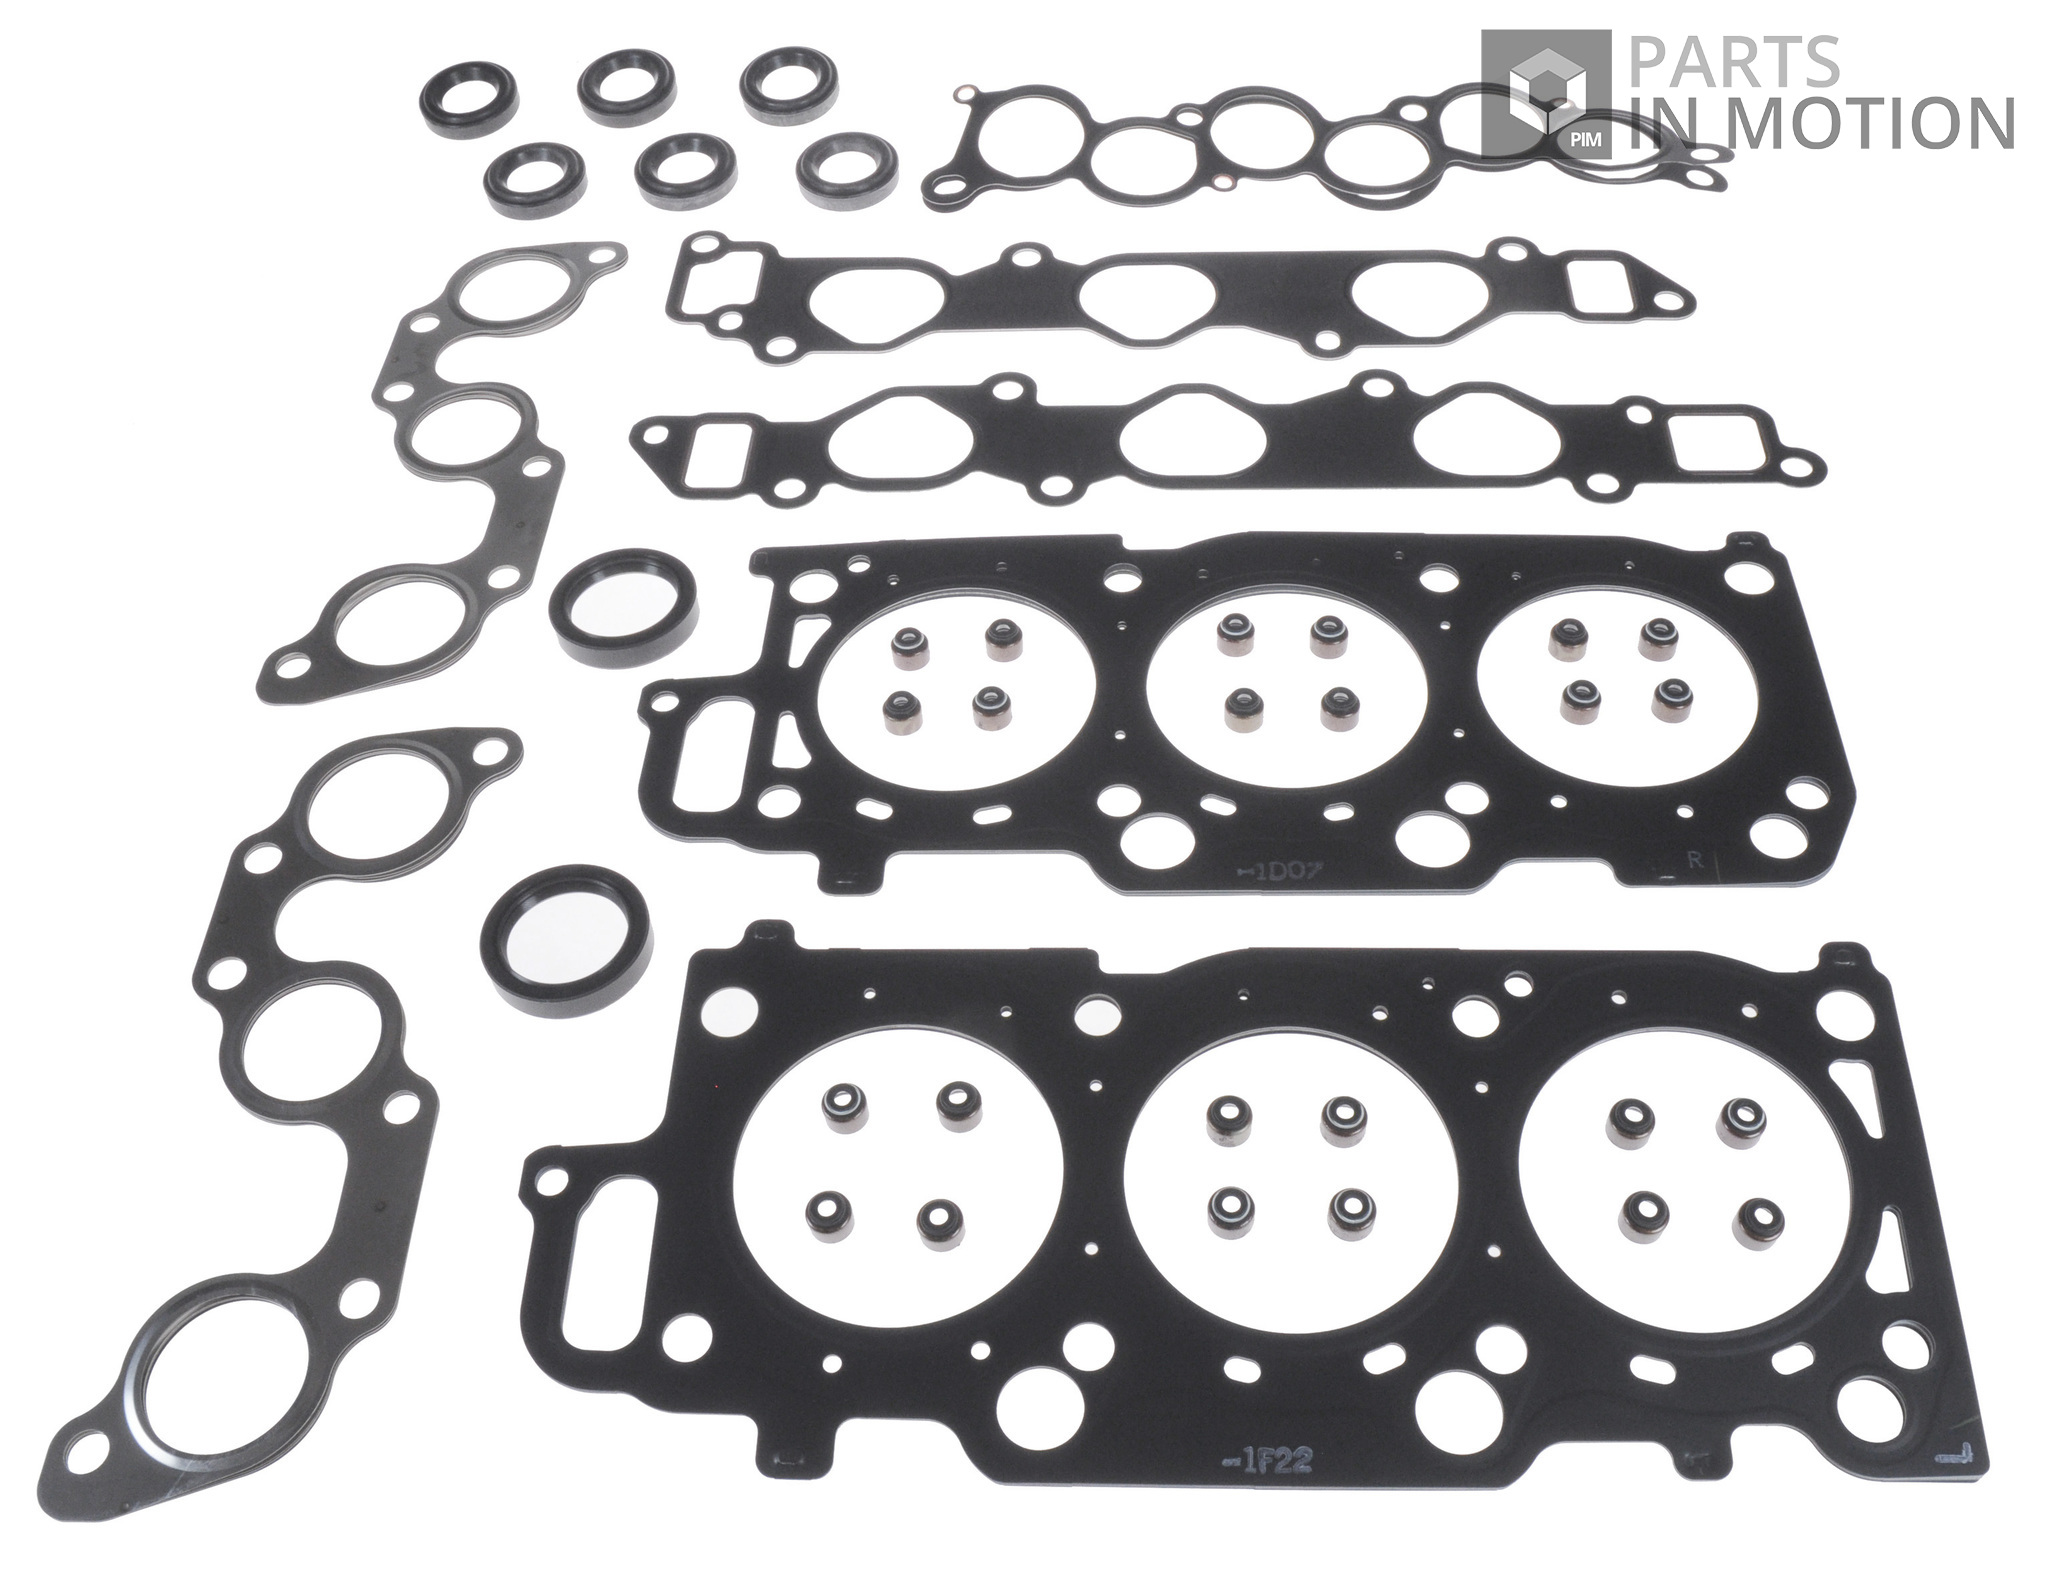 Head Gasket Set ADT362121C Blue Print 0411220111 0411220040 0411220410 Quality